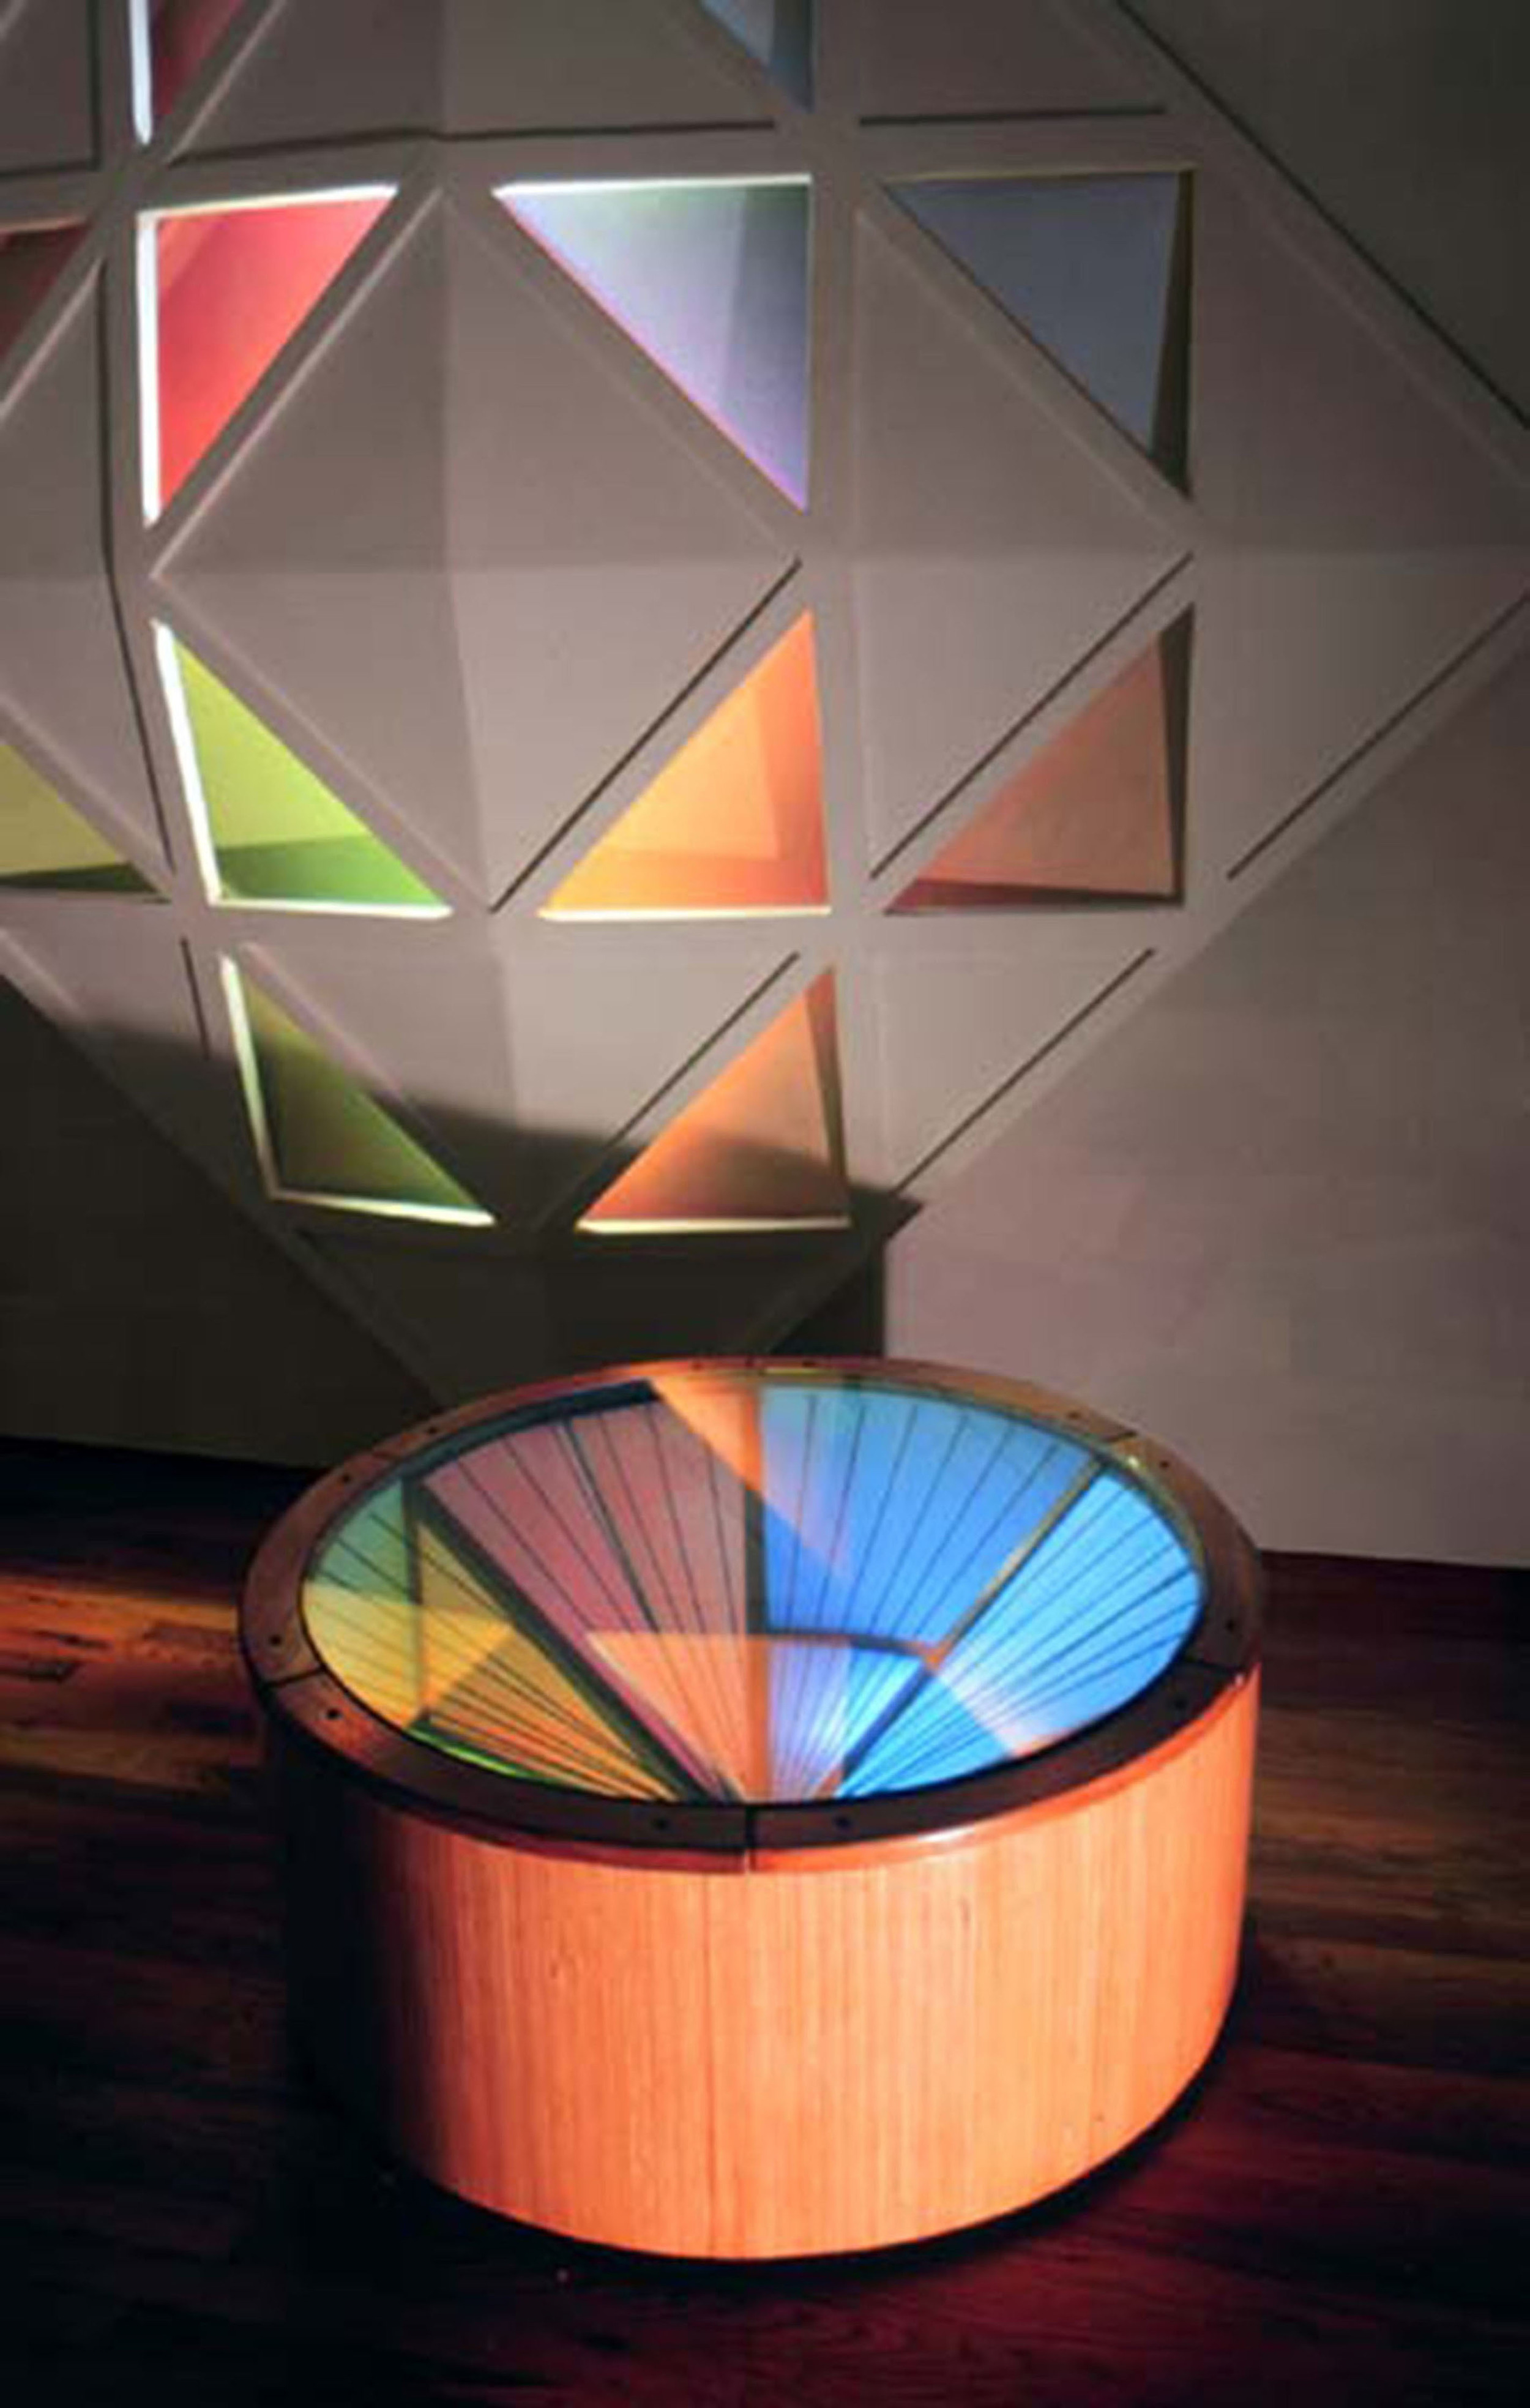 2 - Stained glass table with sculpture.jpg